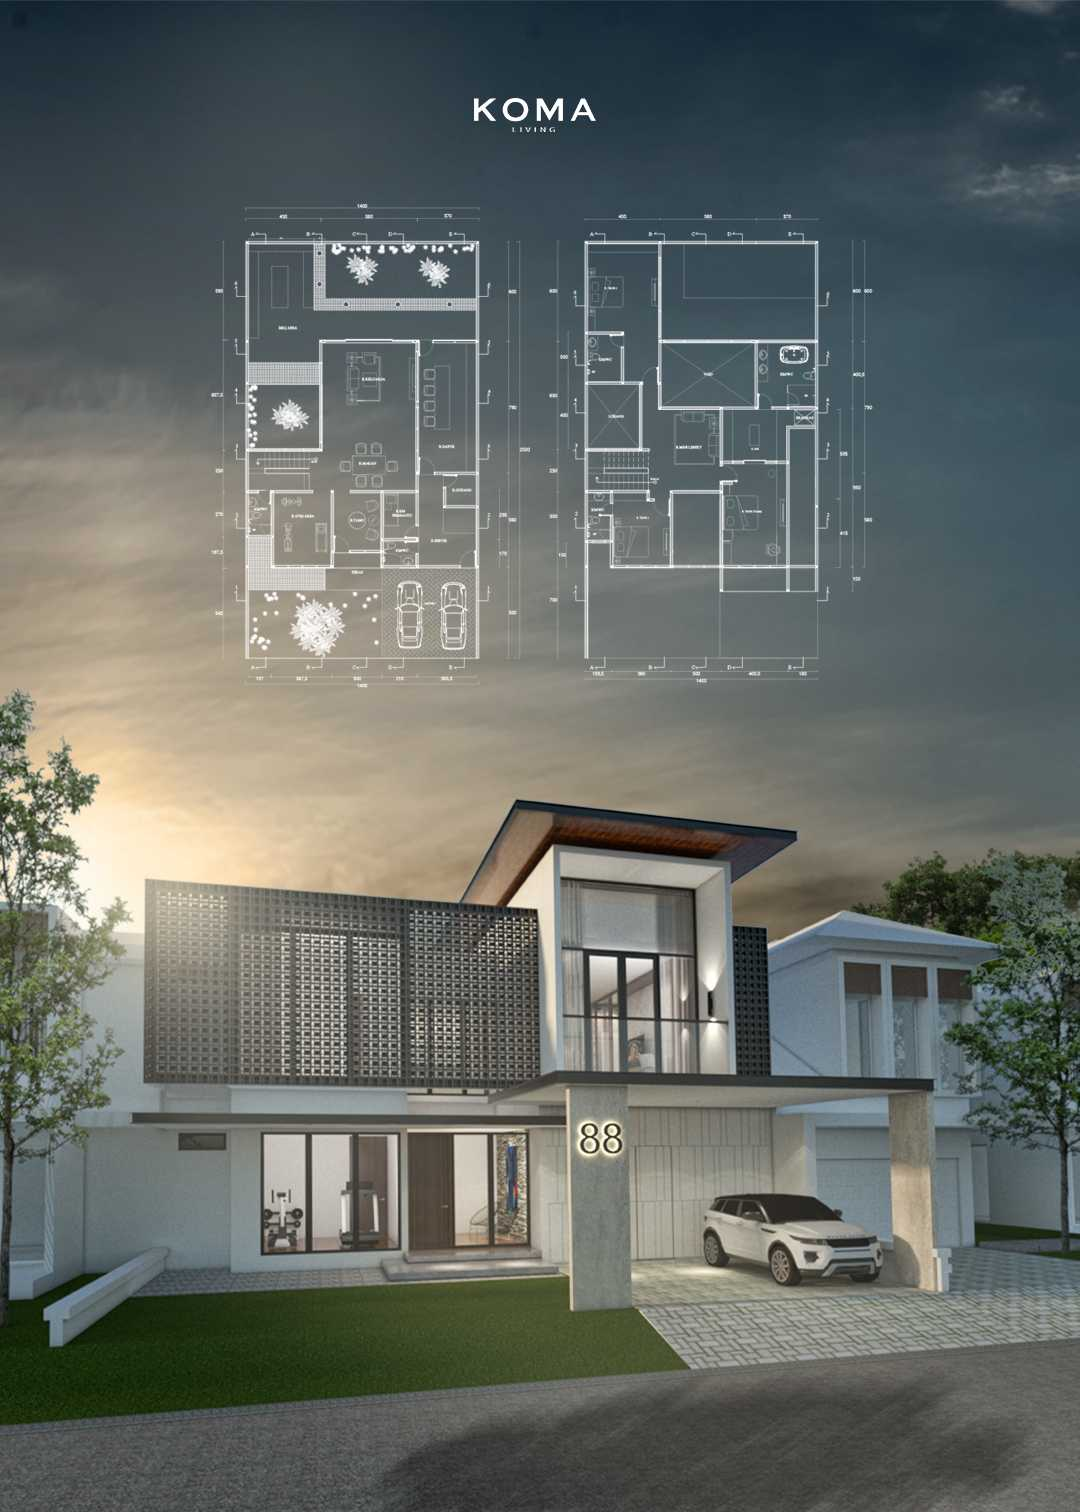 Koma Bs House Jl. Jalur Sutera No.17, Kunciran, Pinang, Kota Tangerang, Banten 15143, Indonesia Jl. Jalur Sutera No.17, Kunciran, Pinang, Kota Tangerang, Banten 15143, Indonesia Koma-Bs-House Contemporary Bs House Located At Alam Sutera, Tangerang, Indonesia, A Renovation From Row House Built By Alam Sutera Realty And Redesigned By Koma Architect, The Architectural Concept For The House Is Elegant And Sleek DesignWith Rich Natural Material Combined With TakingFull Advantage Of Relating To Its Natural Surroundings, MakeThis House Have AStrong Relationship Between The House And Nature. 70240